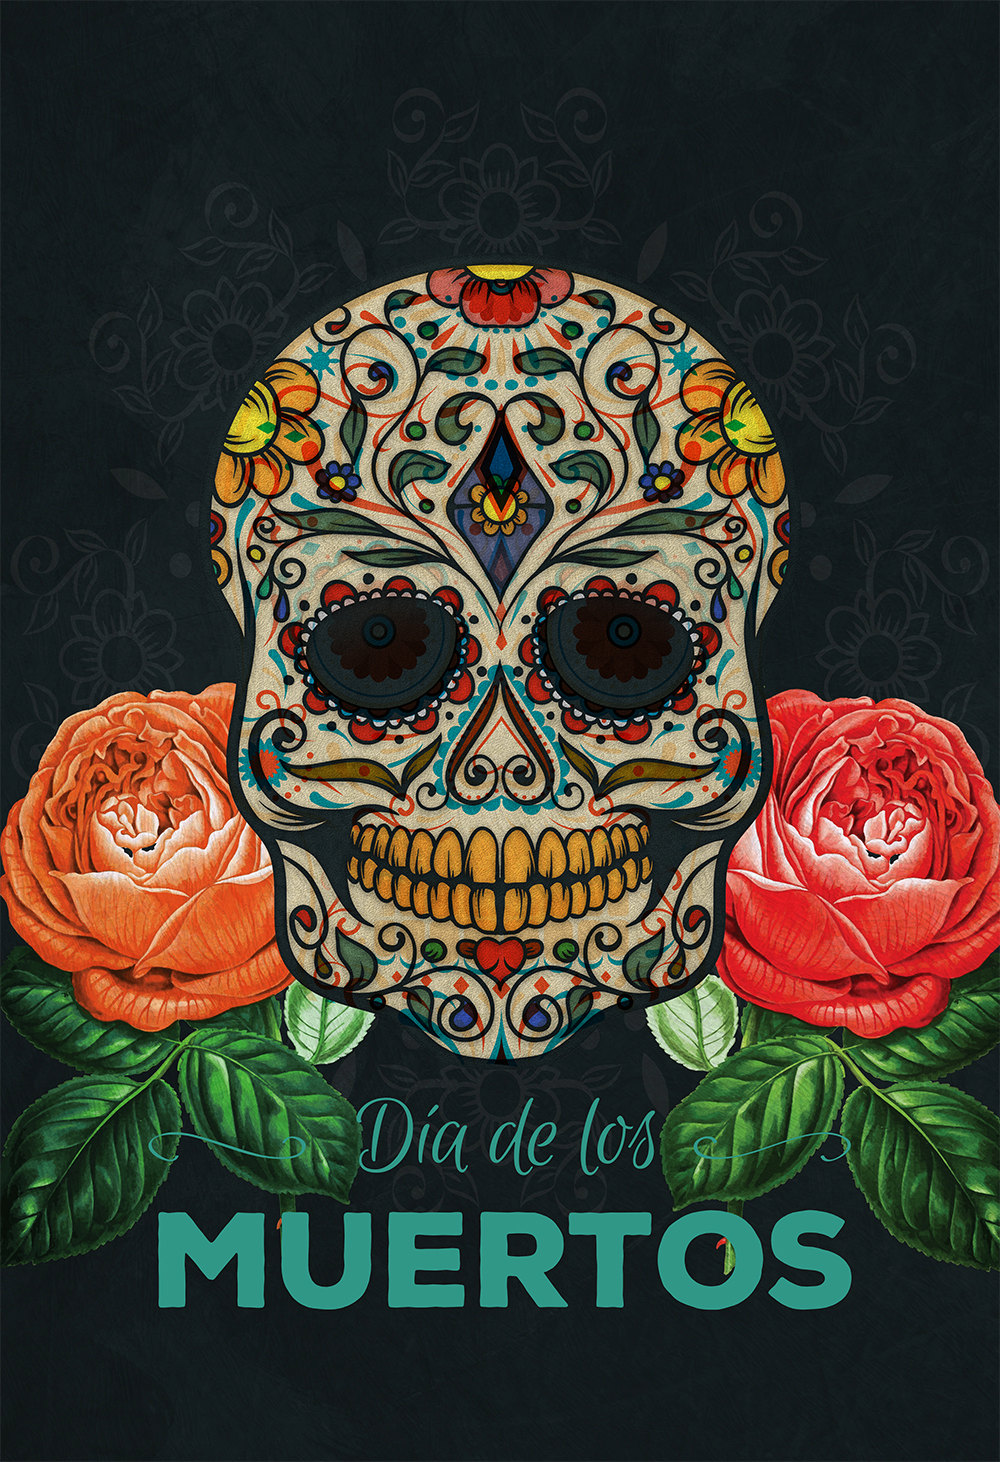 dia de los muertos essay Let me begin by saying it is completely natural that you would find yourself  attracted to the day of the dead this indigenous holiday from.